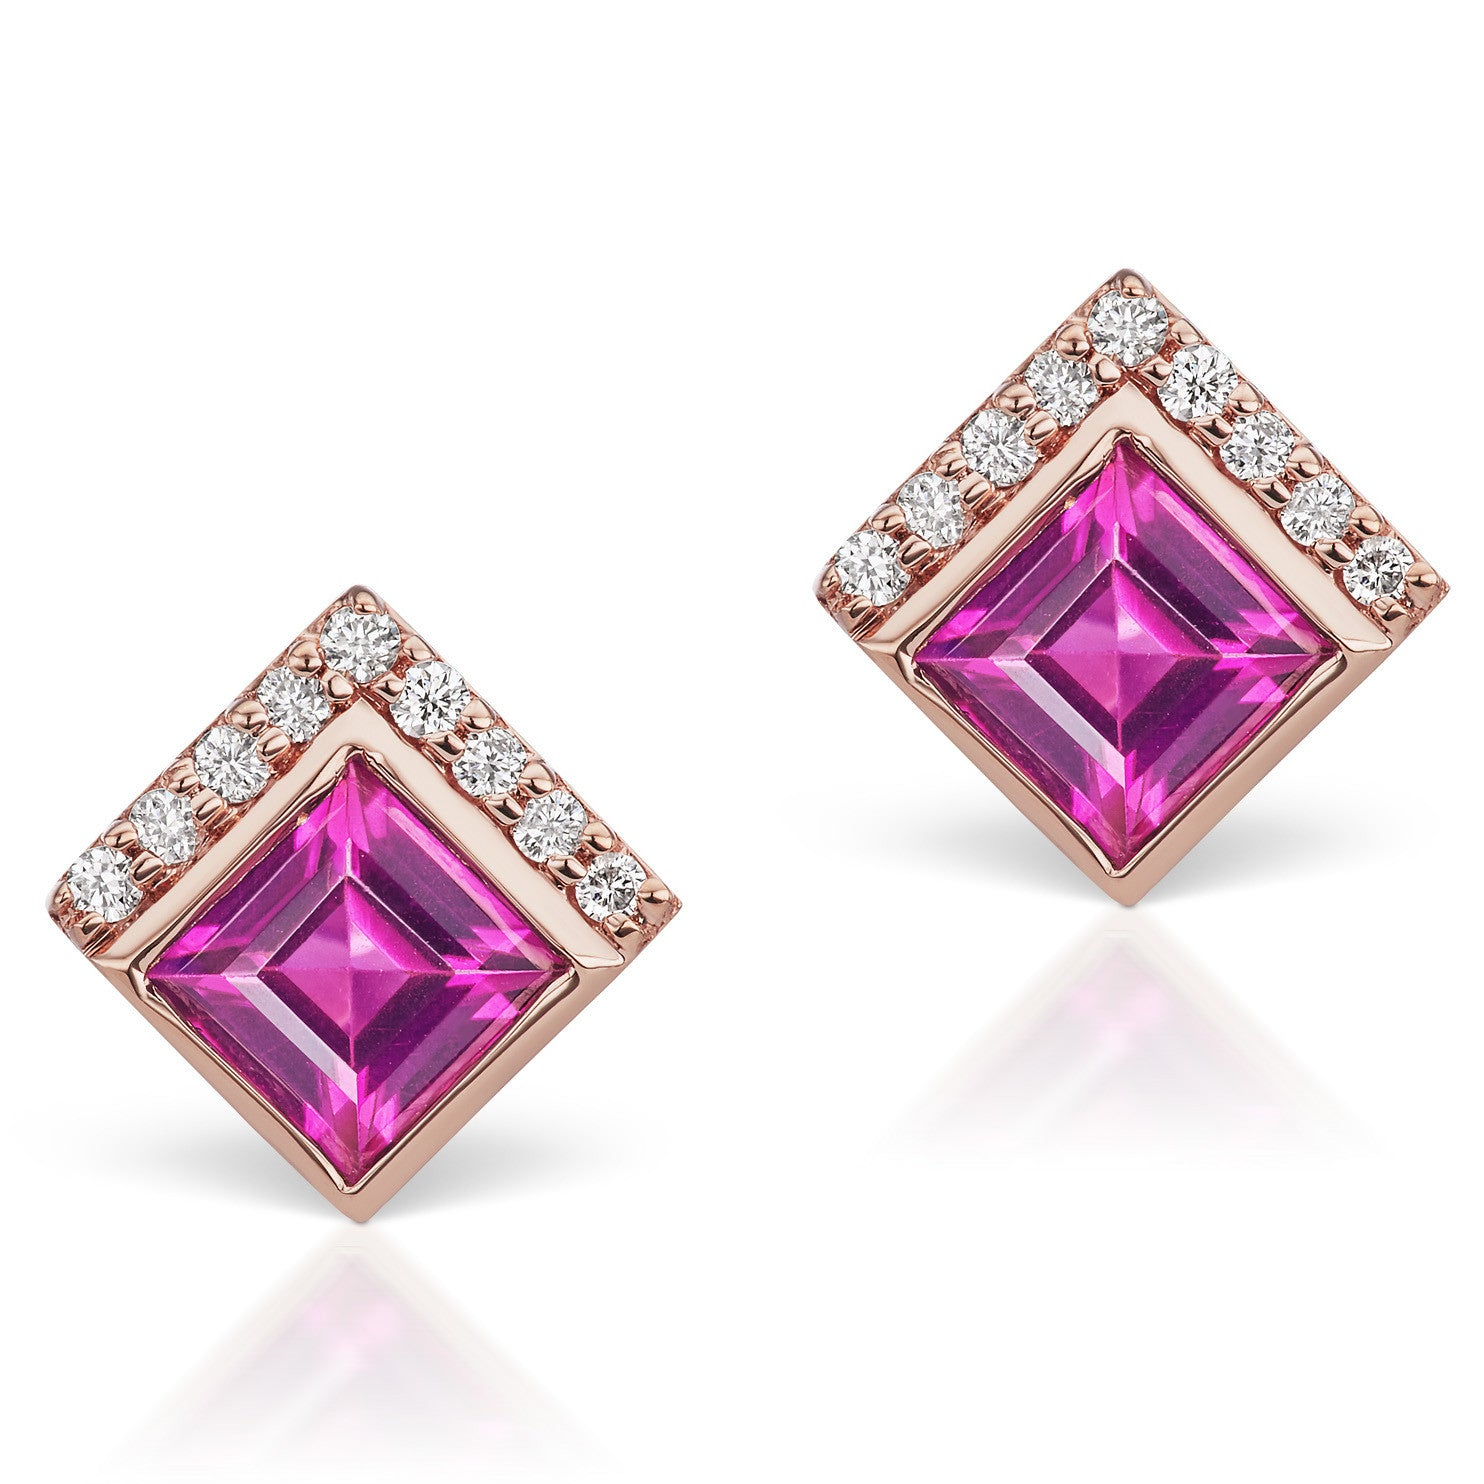 Jane Taylor Cirque Square 14K Rose Gold Stud Earrings Rhodolite